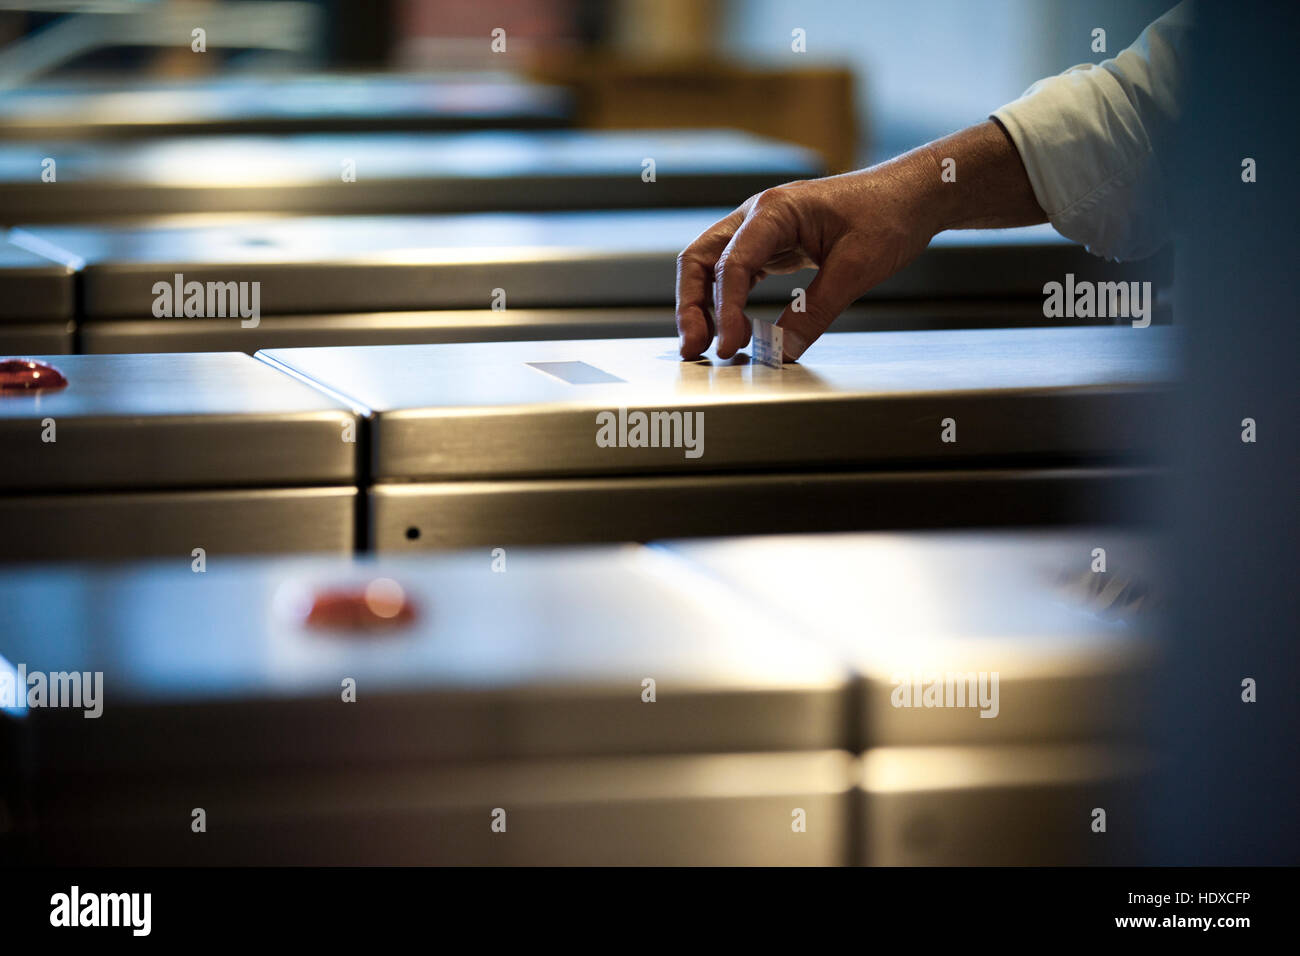 A commuter hand takes a travel ticket from a subway metro machine - Stock Image